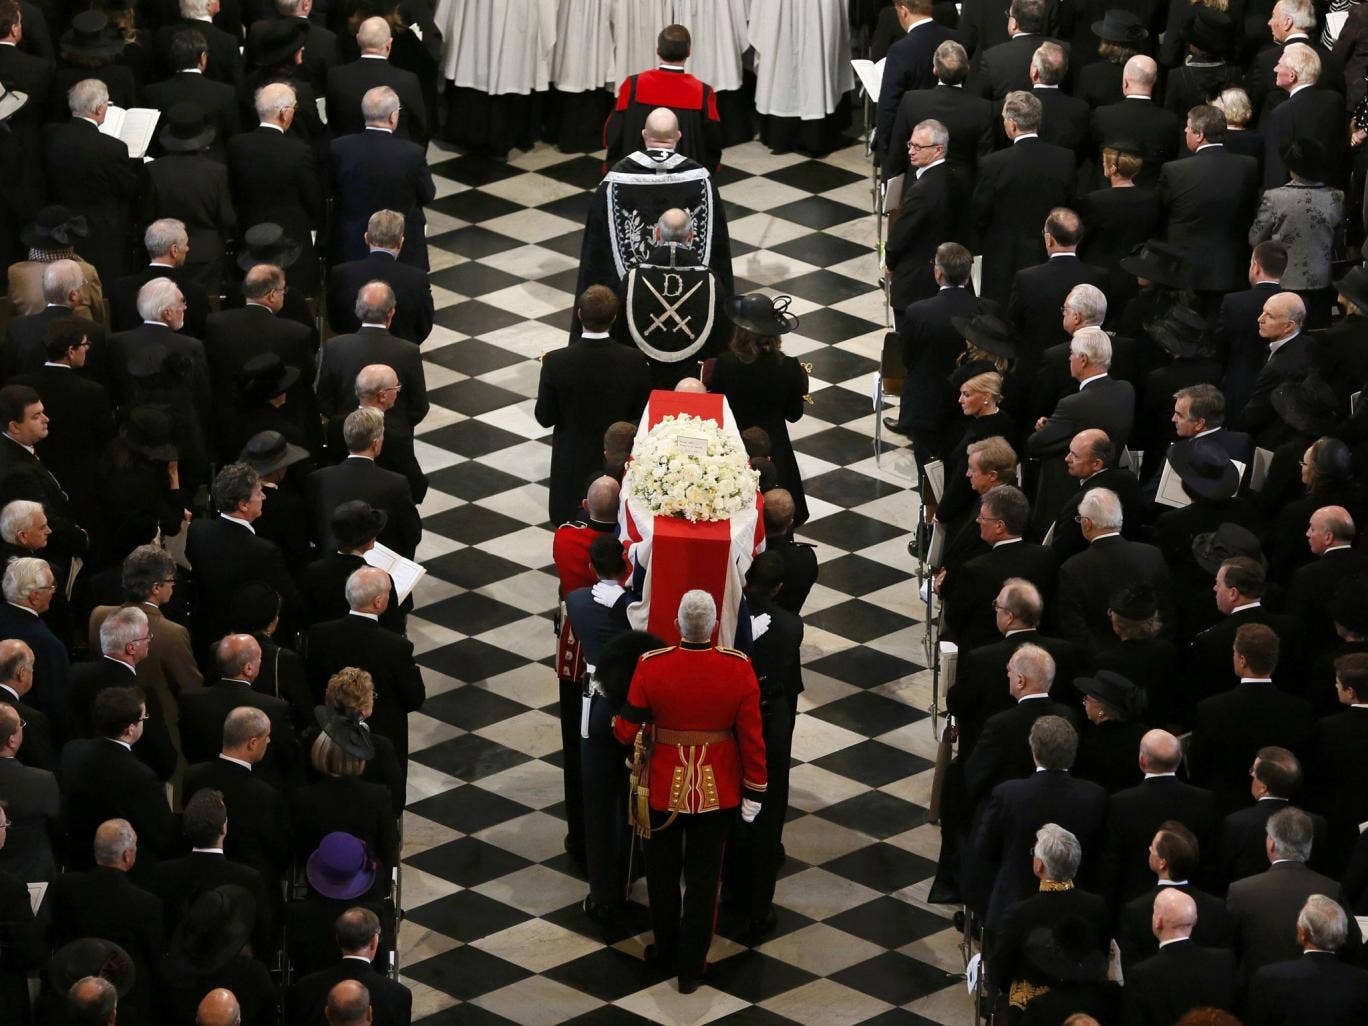 The coffin containing the body of former British Prime Minister Margaret Thatcher arrives for the ceremonial funeral at St Paul's Cathedral